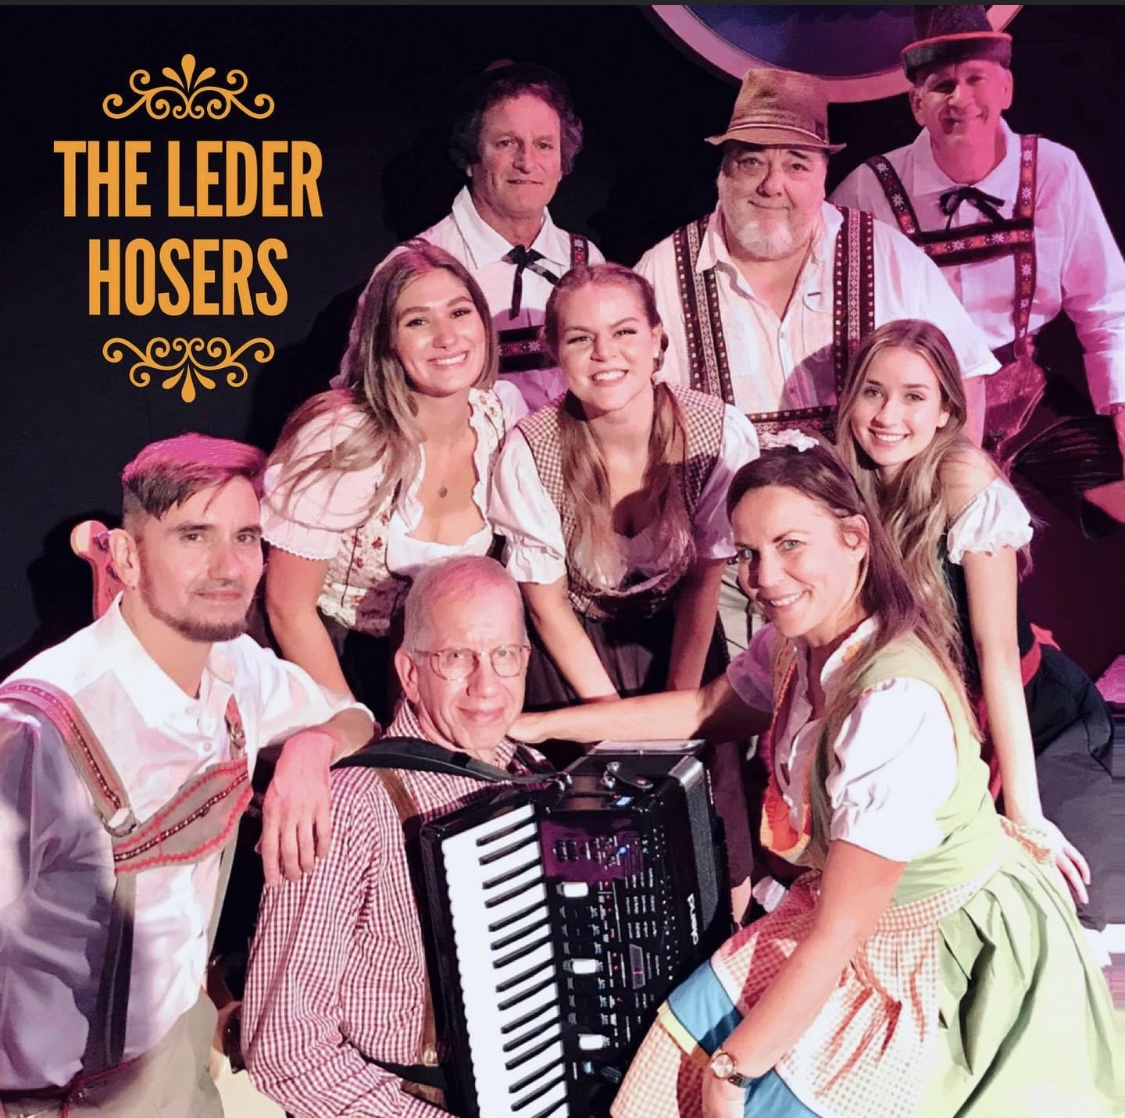 The LederHosers